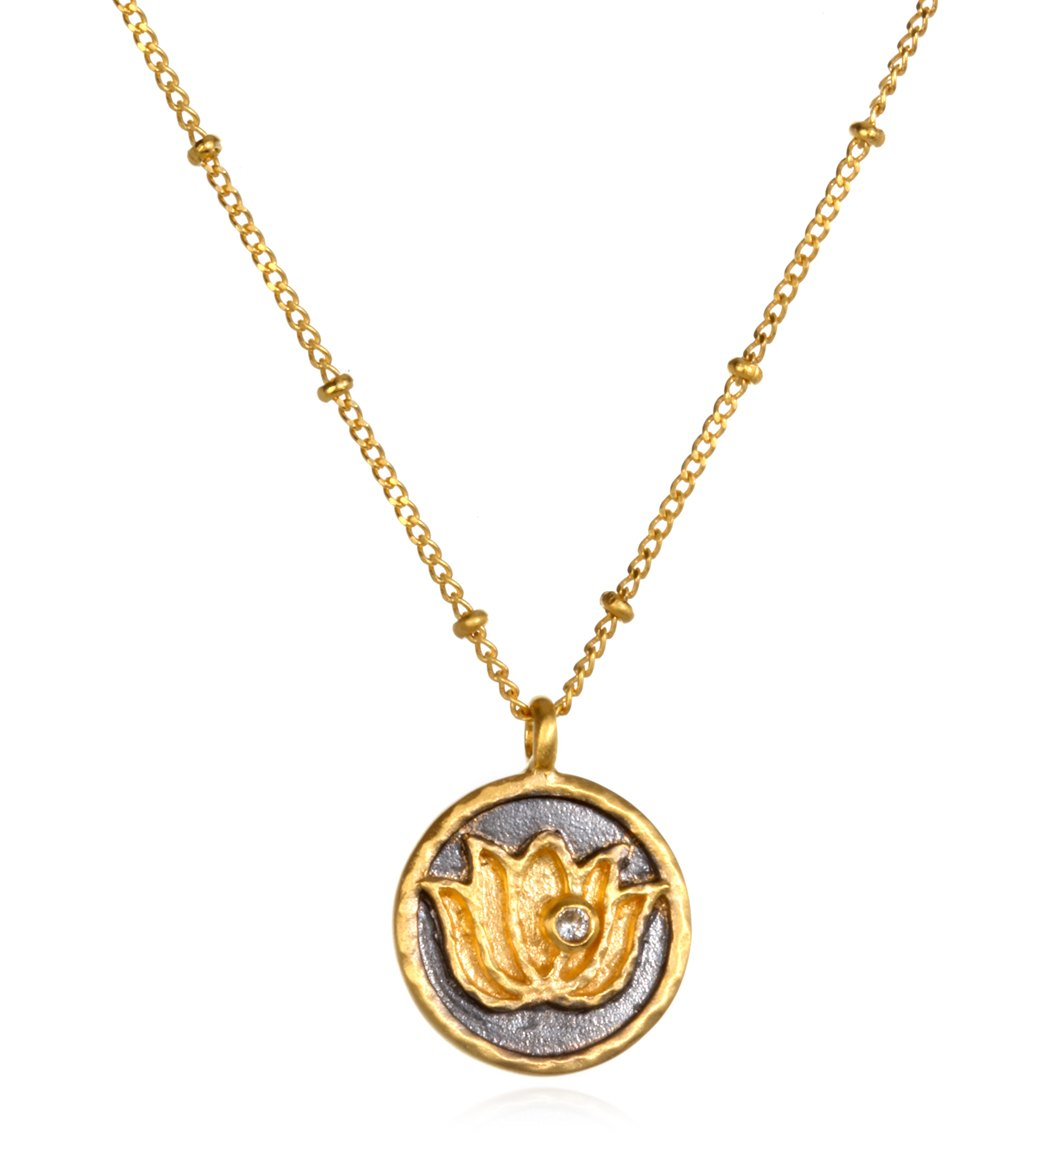 e16f30c3efb280 Satya Jewelry Gold w/ White Topaz Lotus Necklace at YogaOutlet.com ...